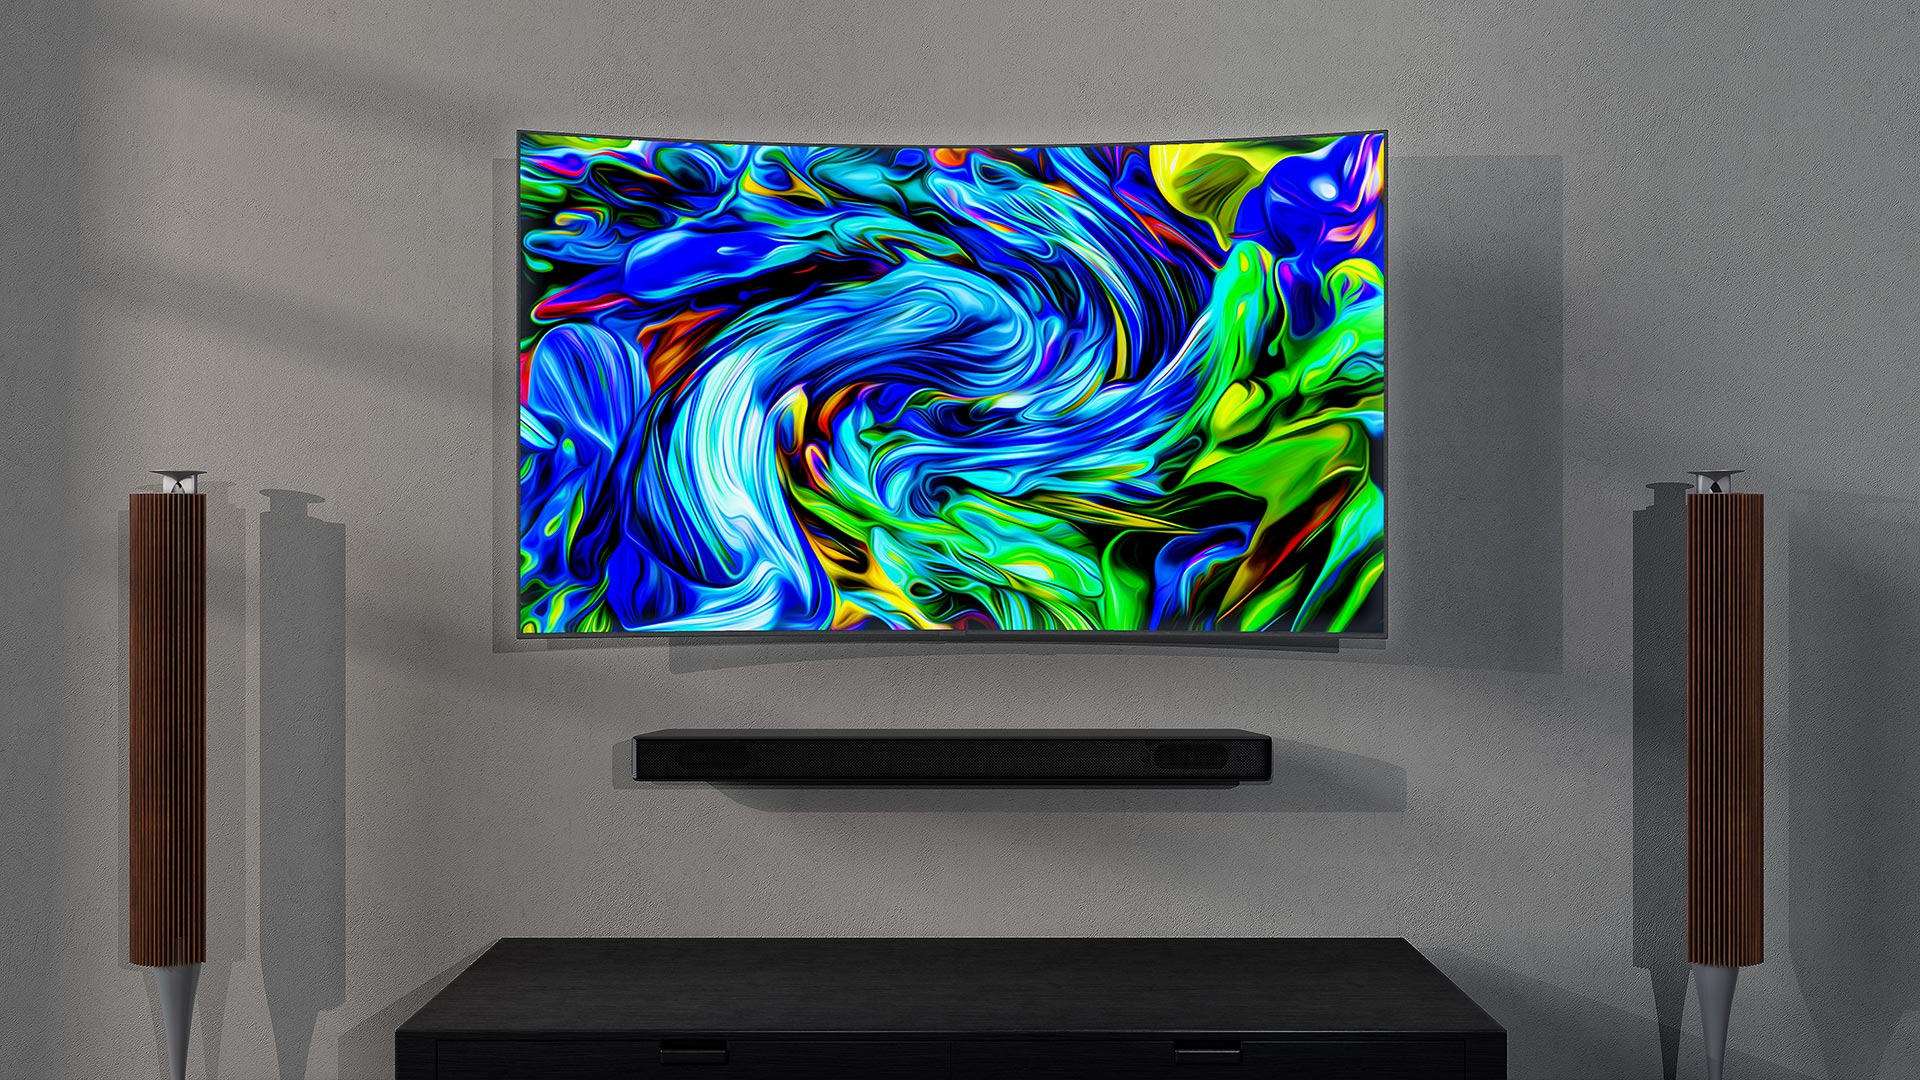 Samsung TV In Situ Render